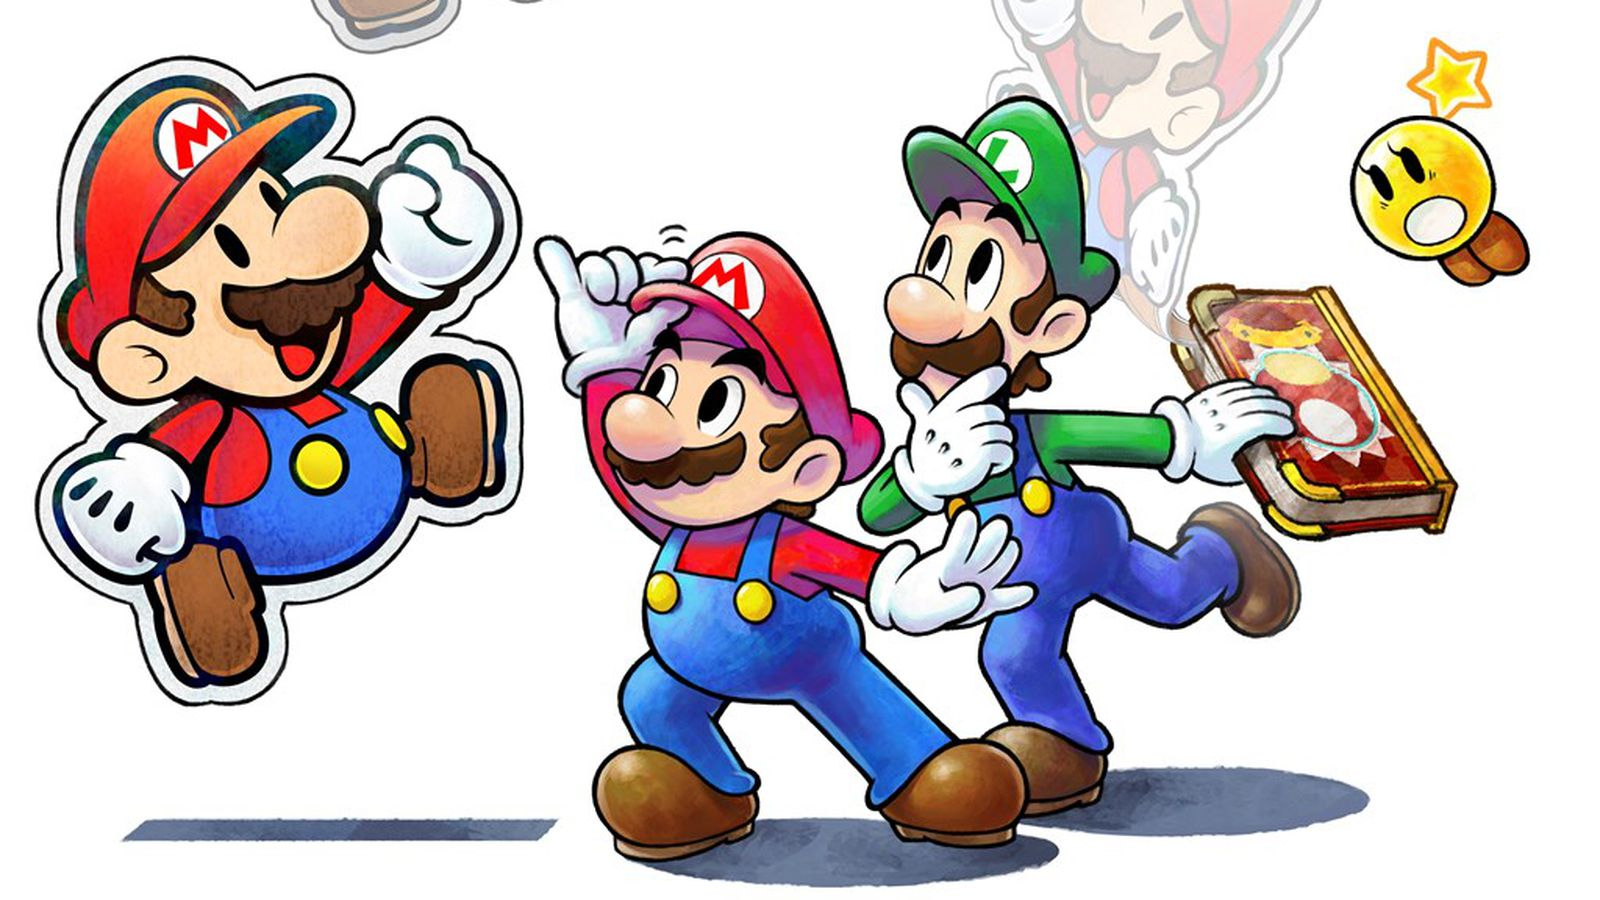 How Super Mario became an unlikely RPG star - The Verge